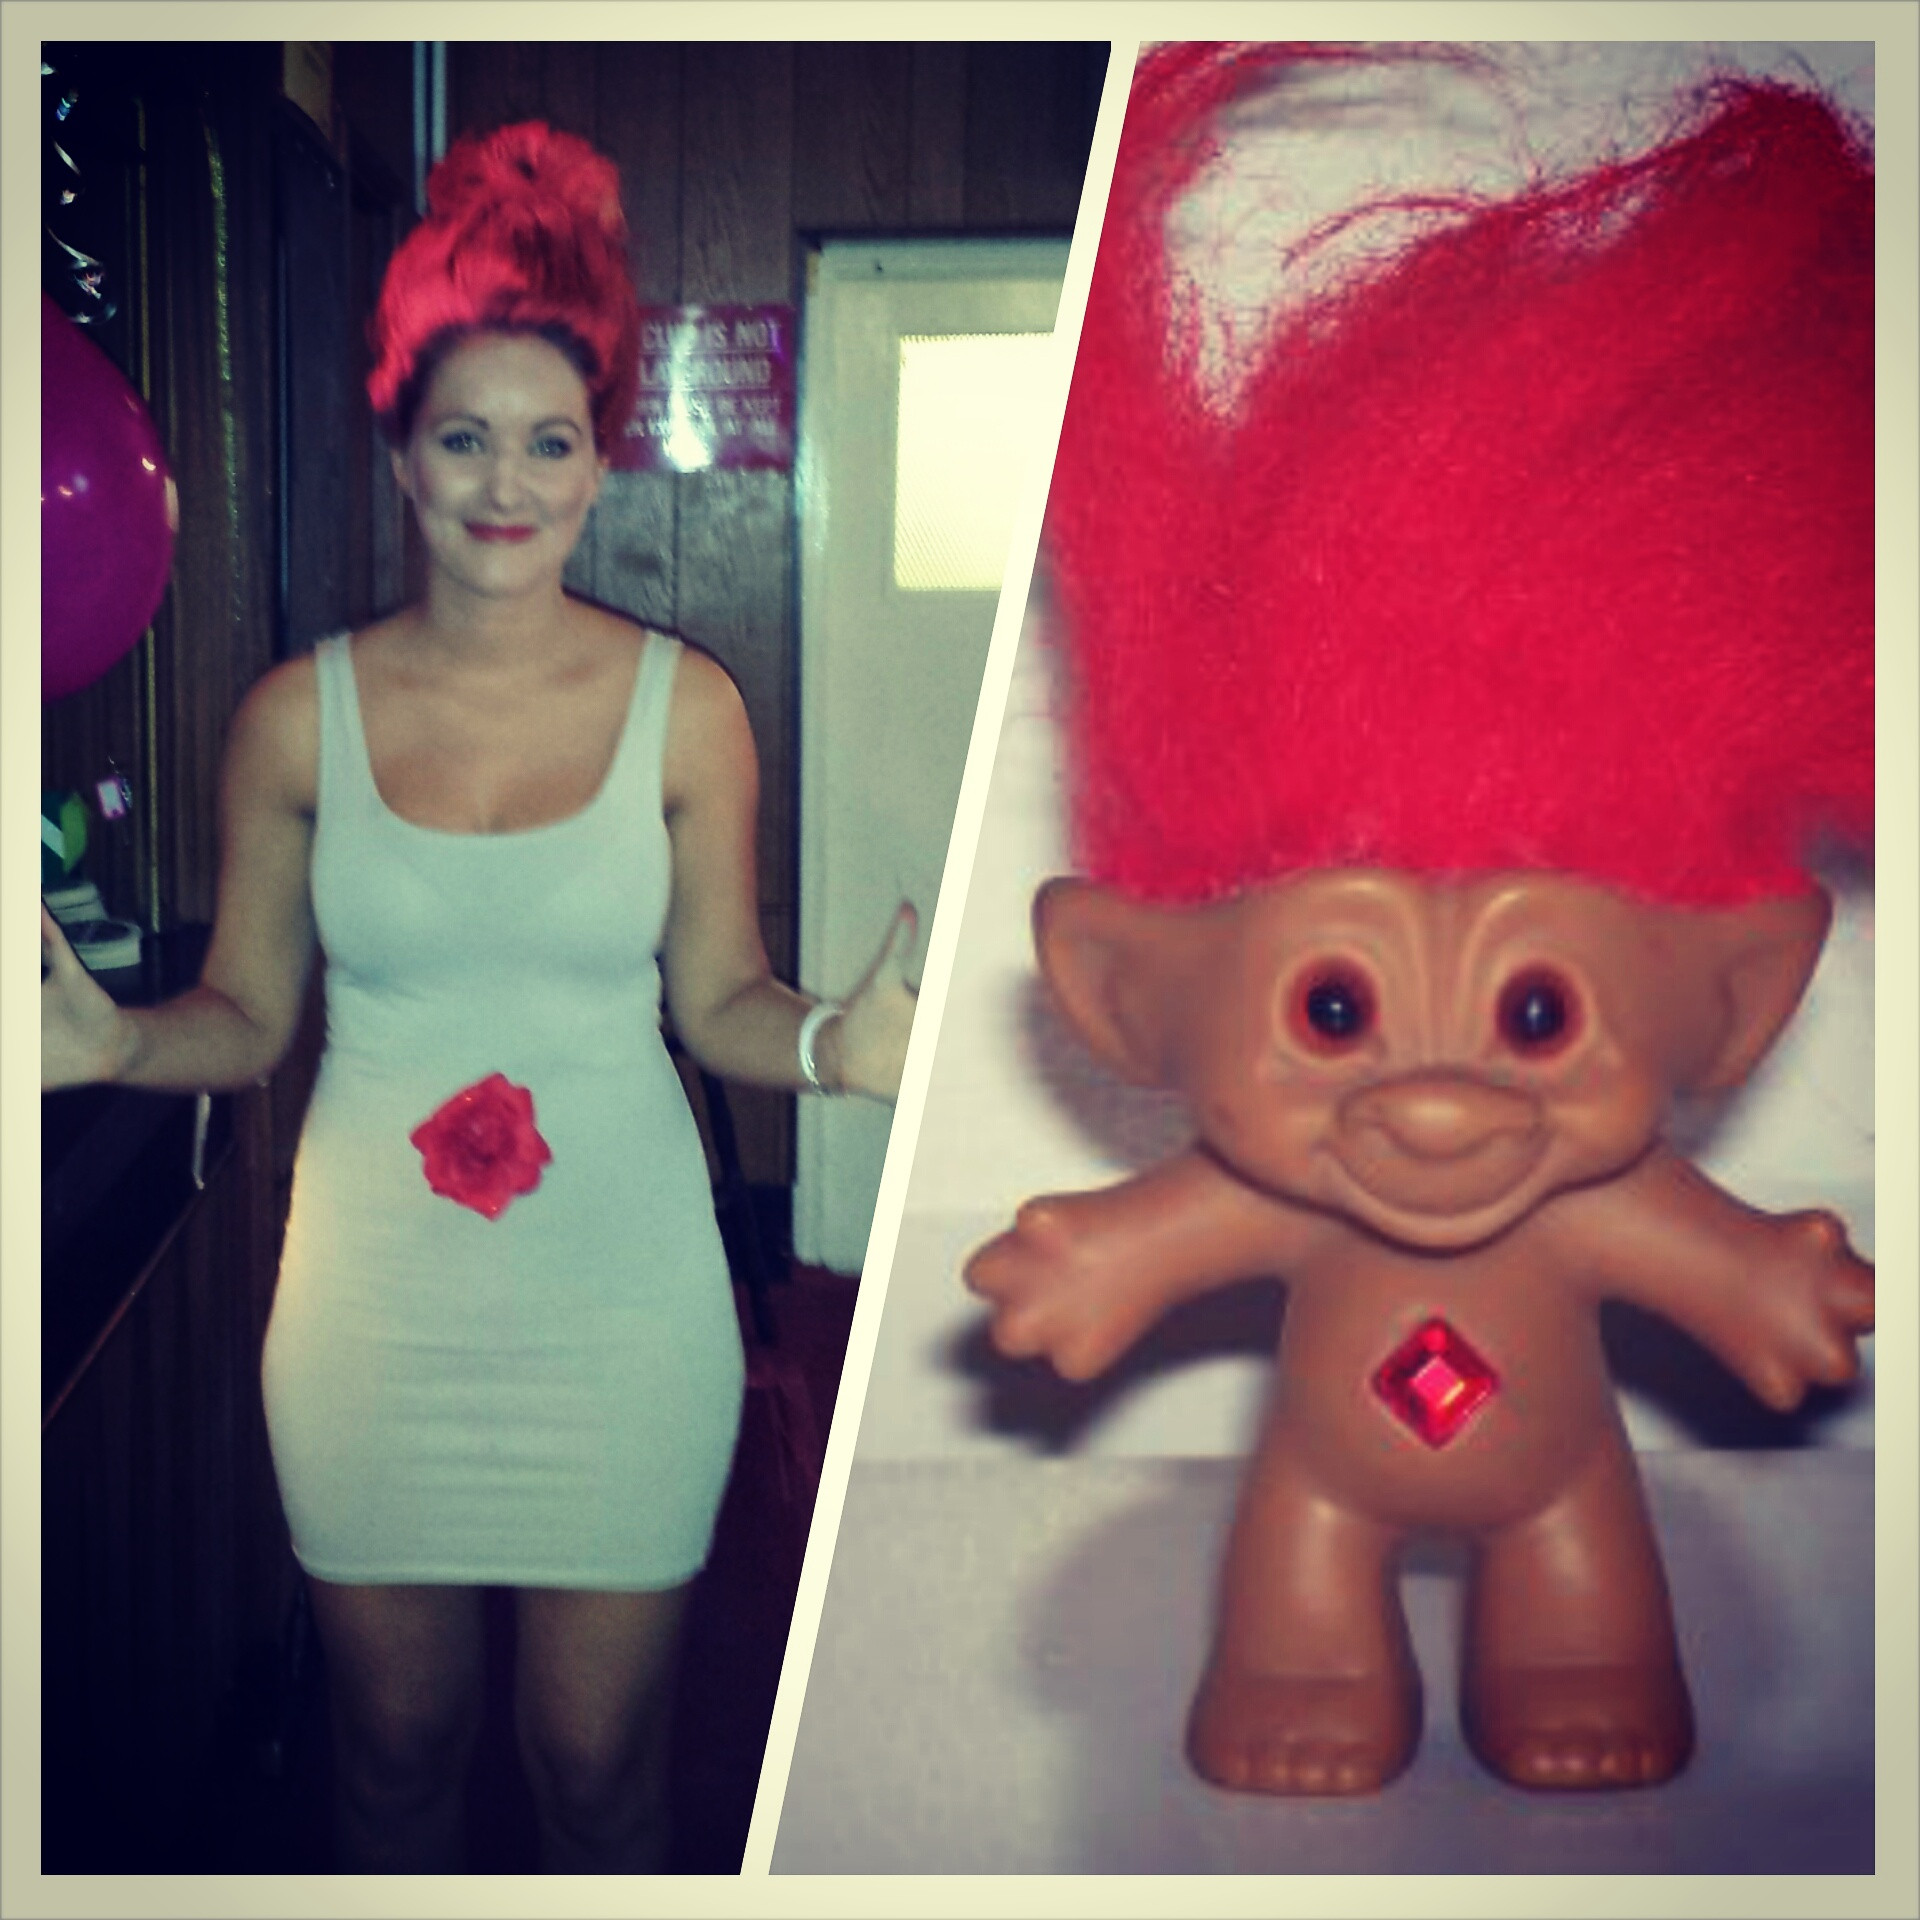 [!] Troll Doll Fancy Dress | 7 New Thoughts About Troll Doll Fancy Dress That Will Turn Your World Upside Down?